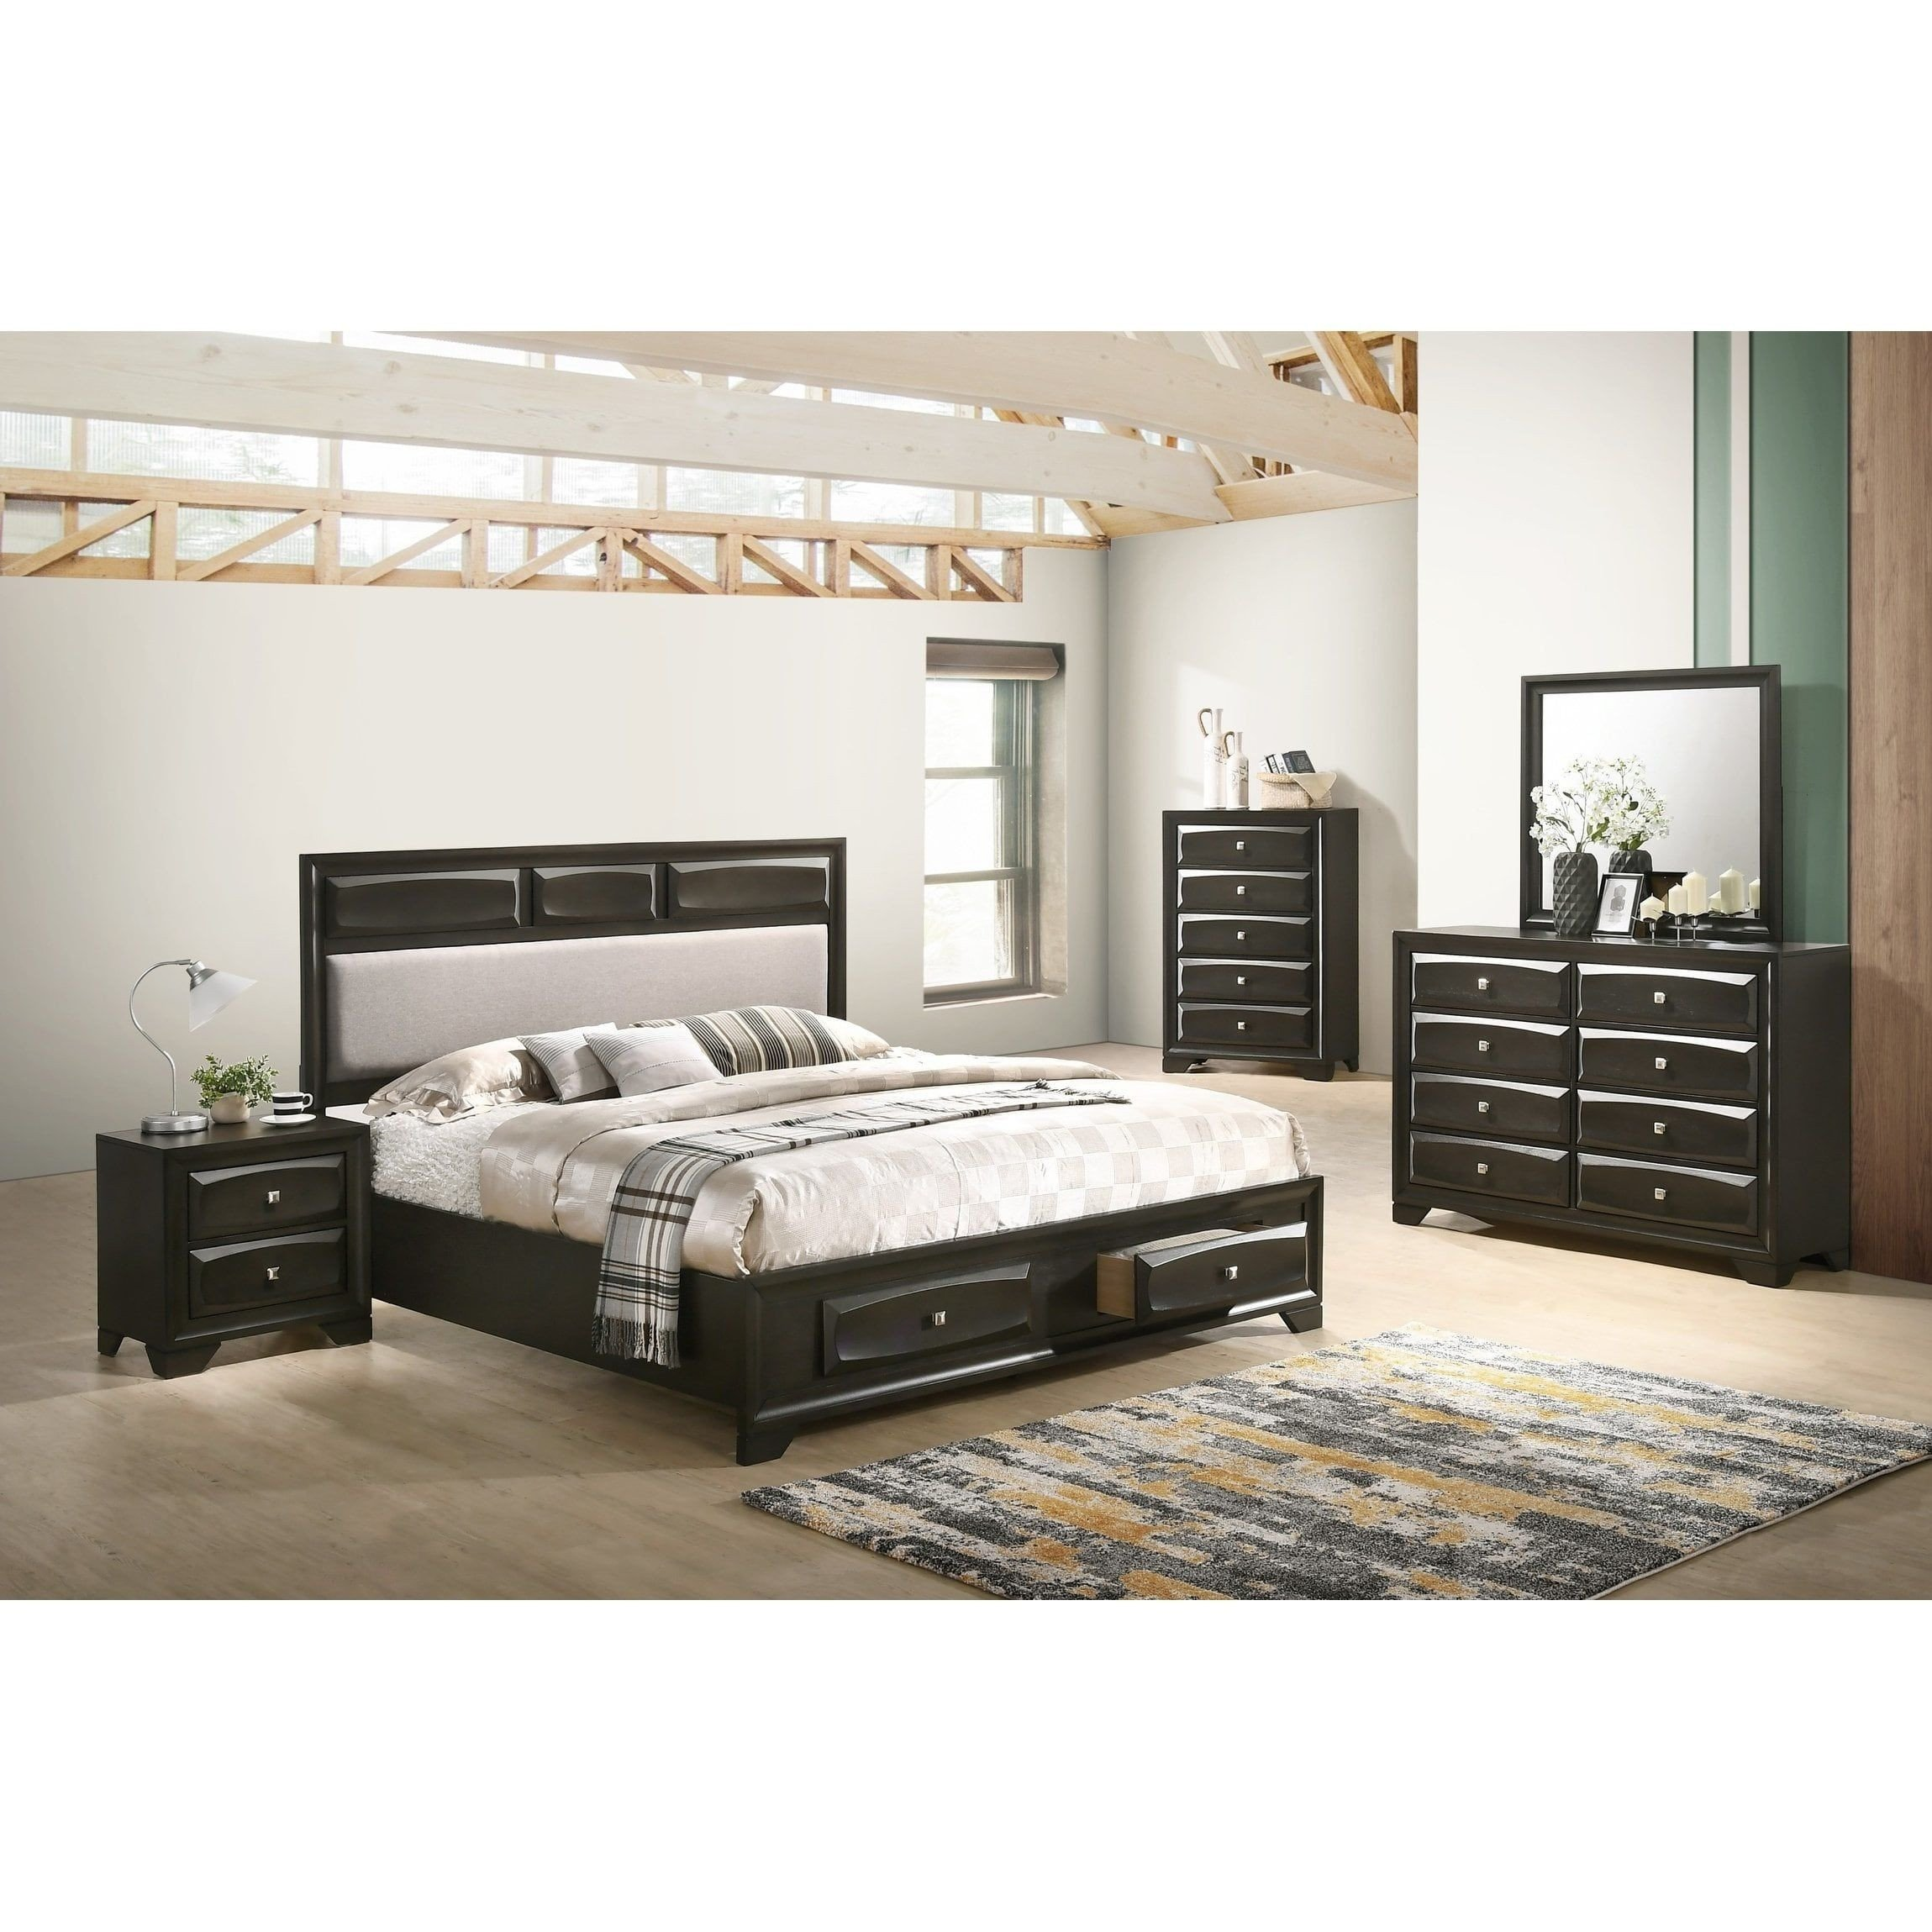 King Size Bedroom Set New Oakland Antique Gray Finish Wood 5 Pc King Size Bedroom Set